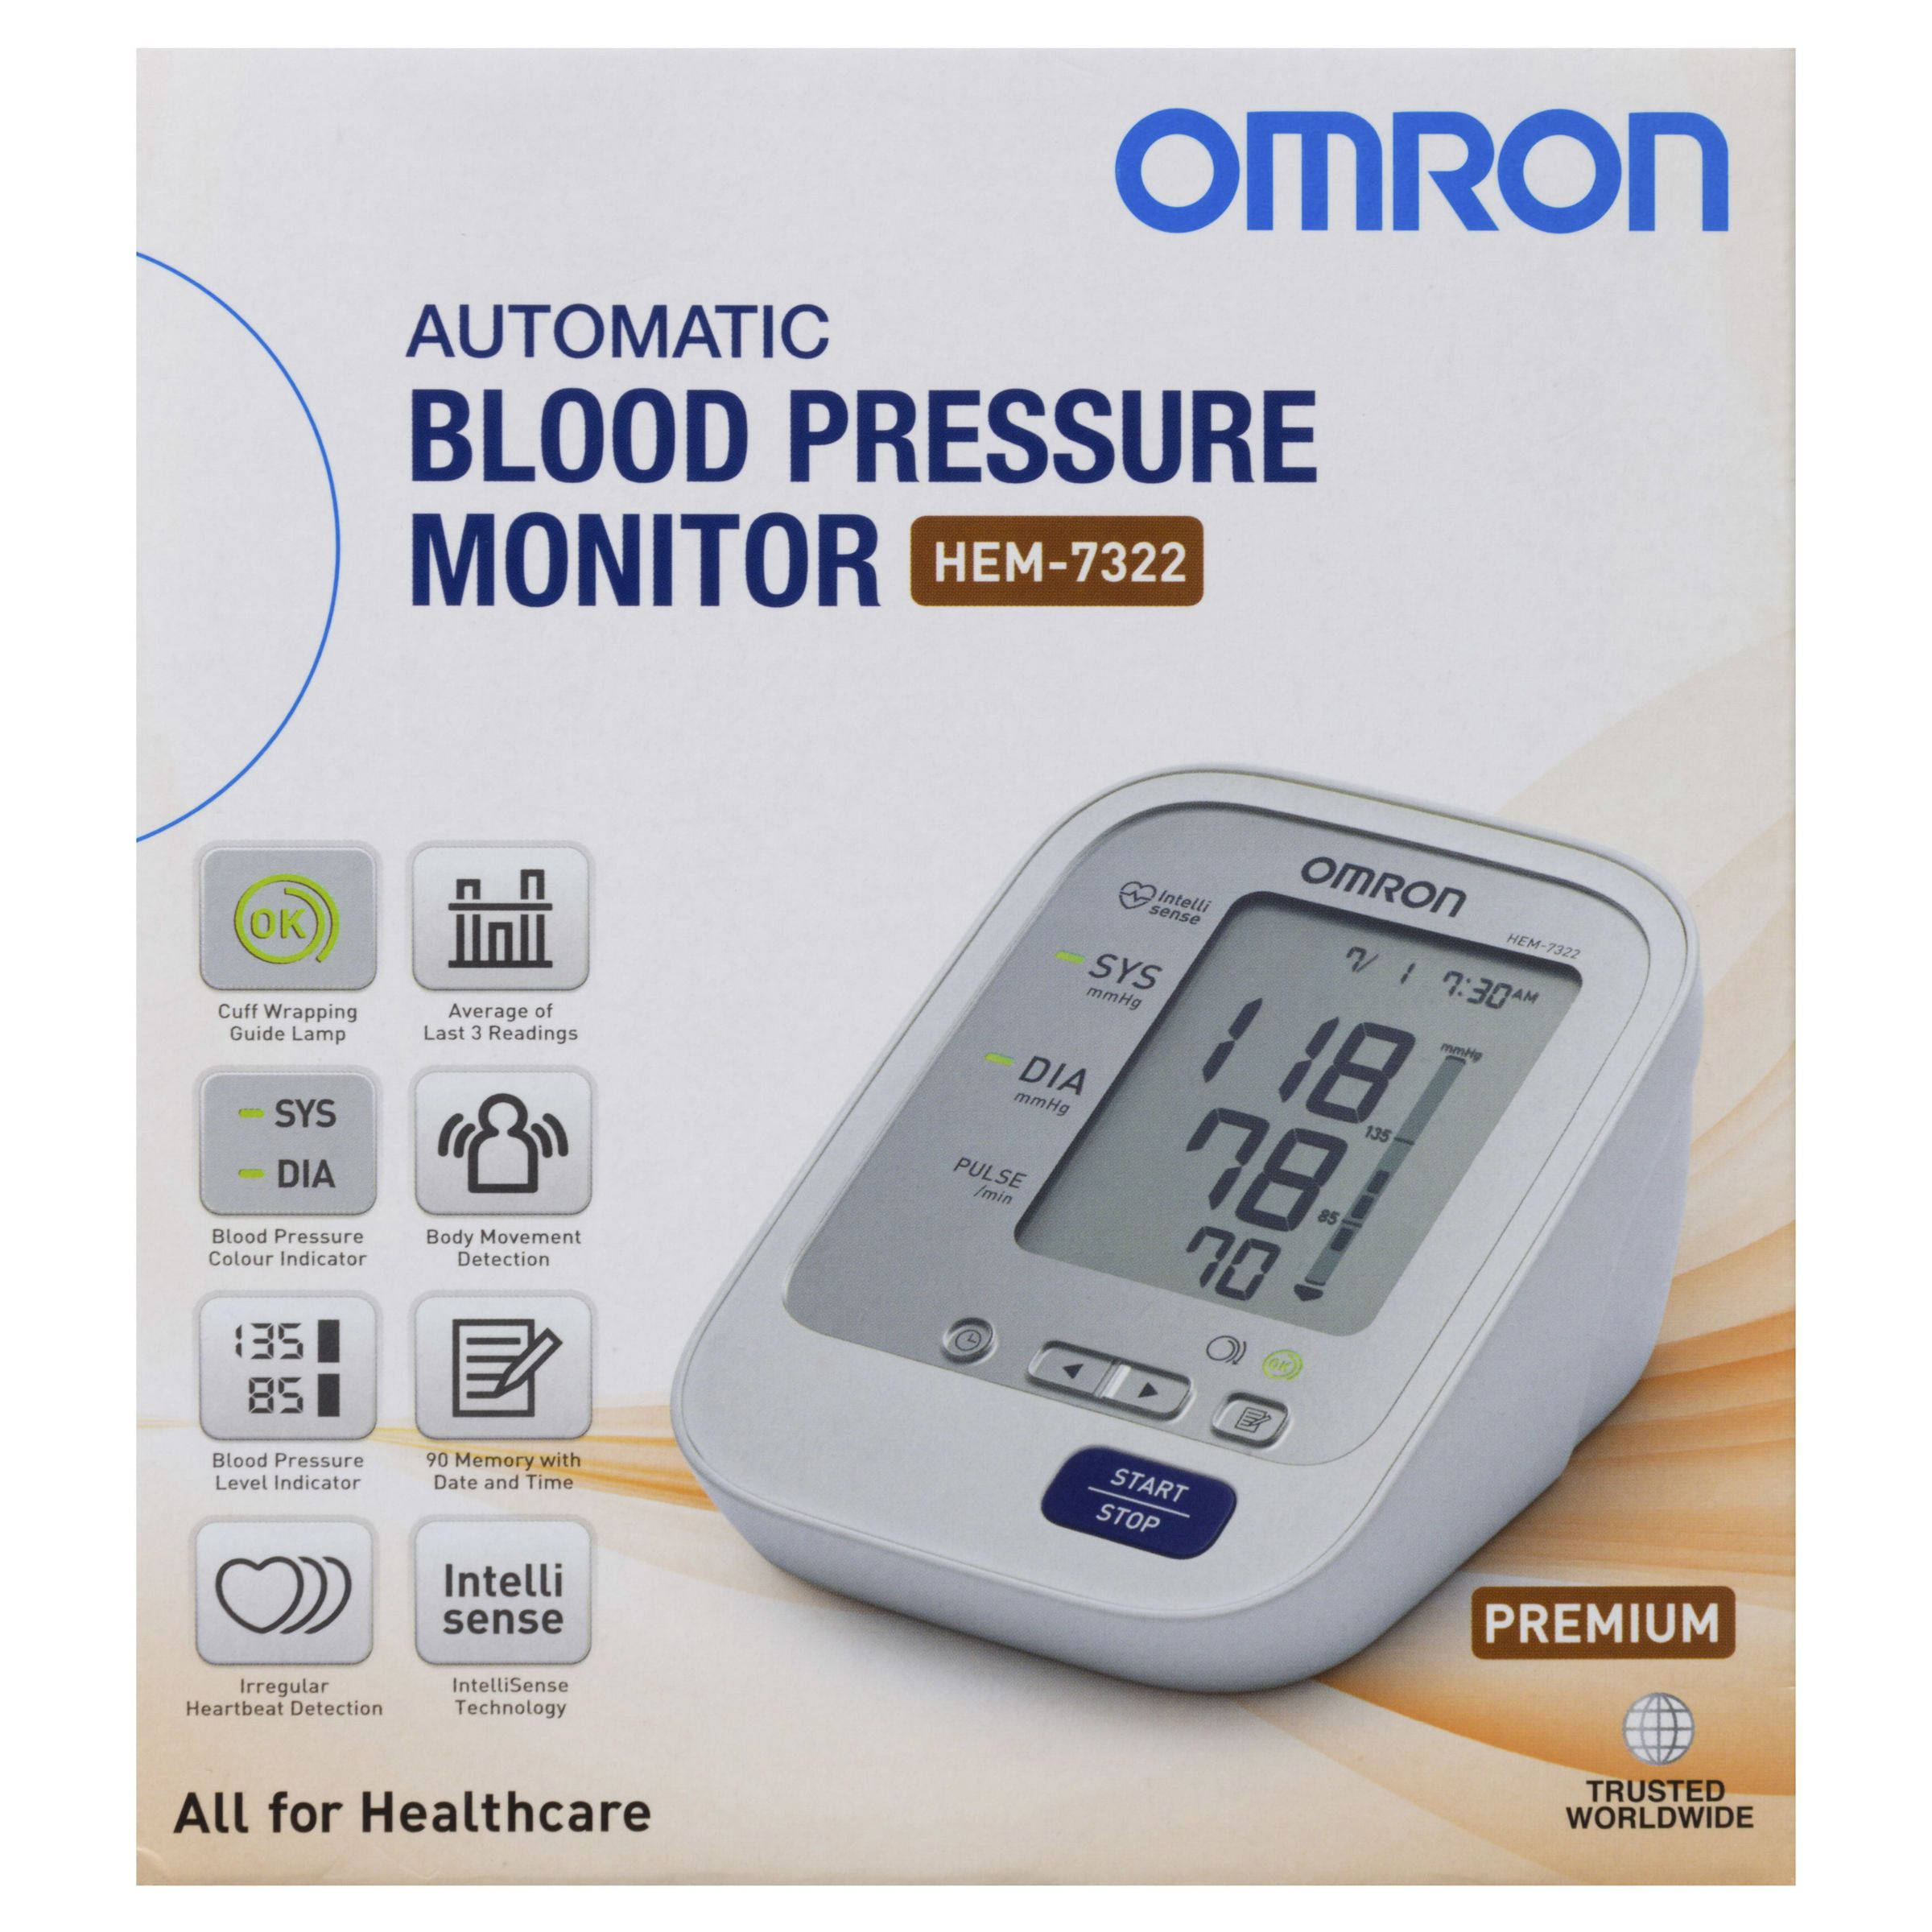 Omron HEM-7322 Automatic Blood Pressure Monitor - Your